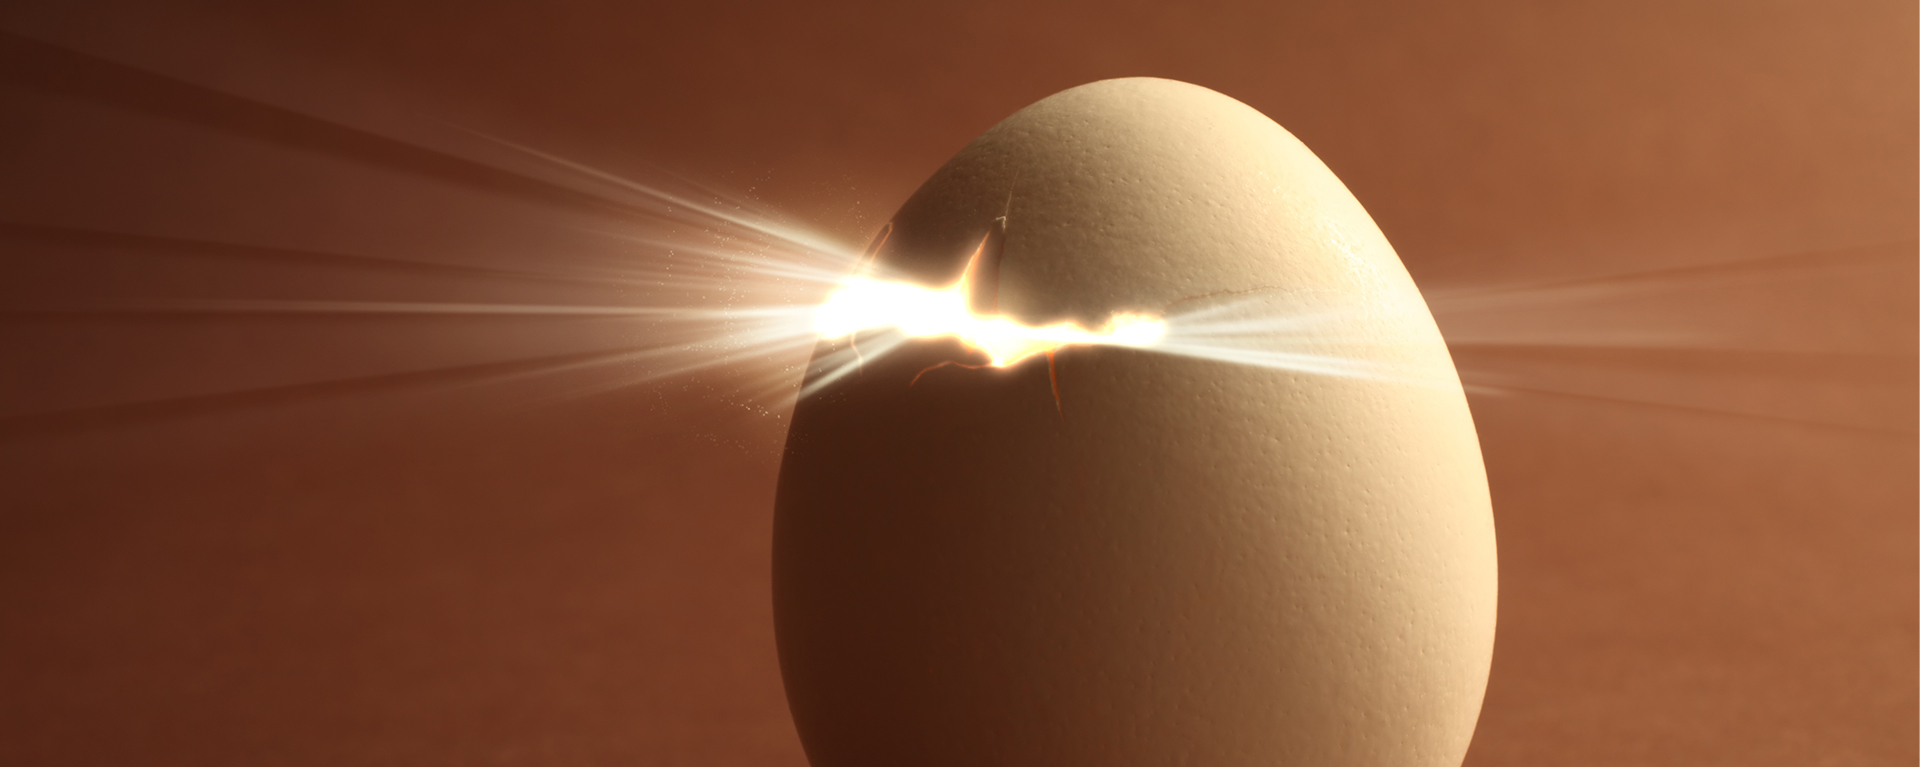 Image of an egg cracking indicating new beginnings with Swartz Consulting